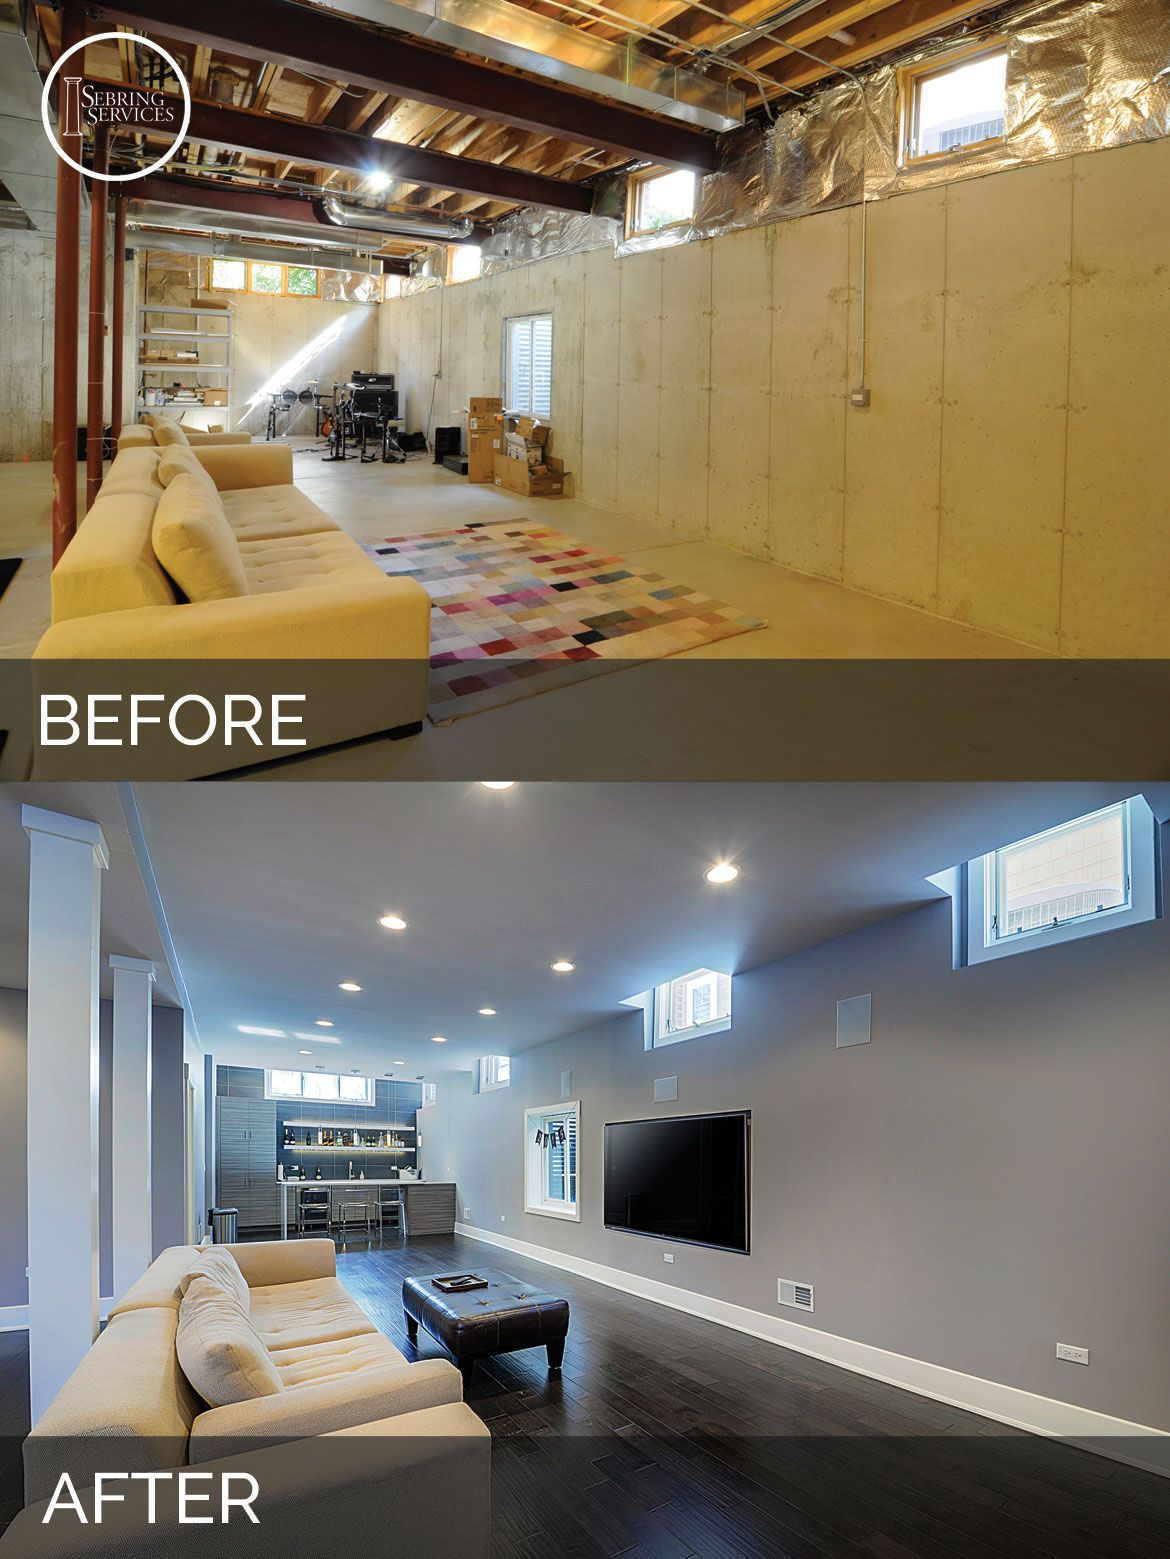 Basement Design Services finished builds Before And After Basement Remodeling Sebring Services